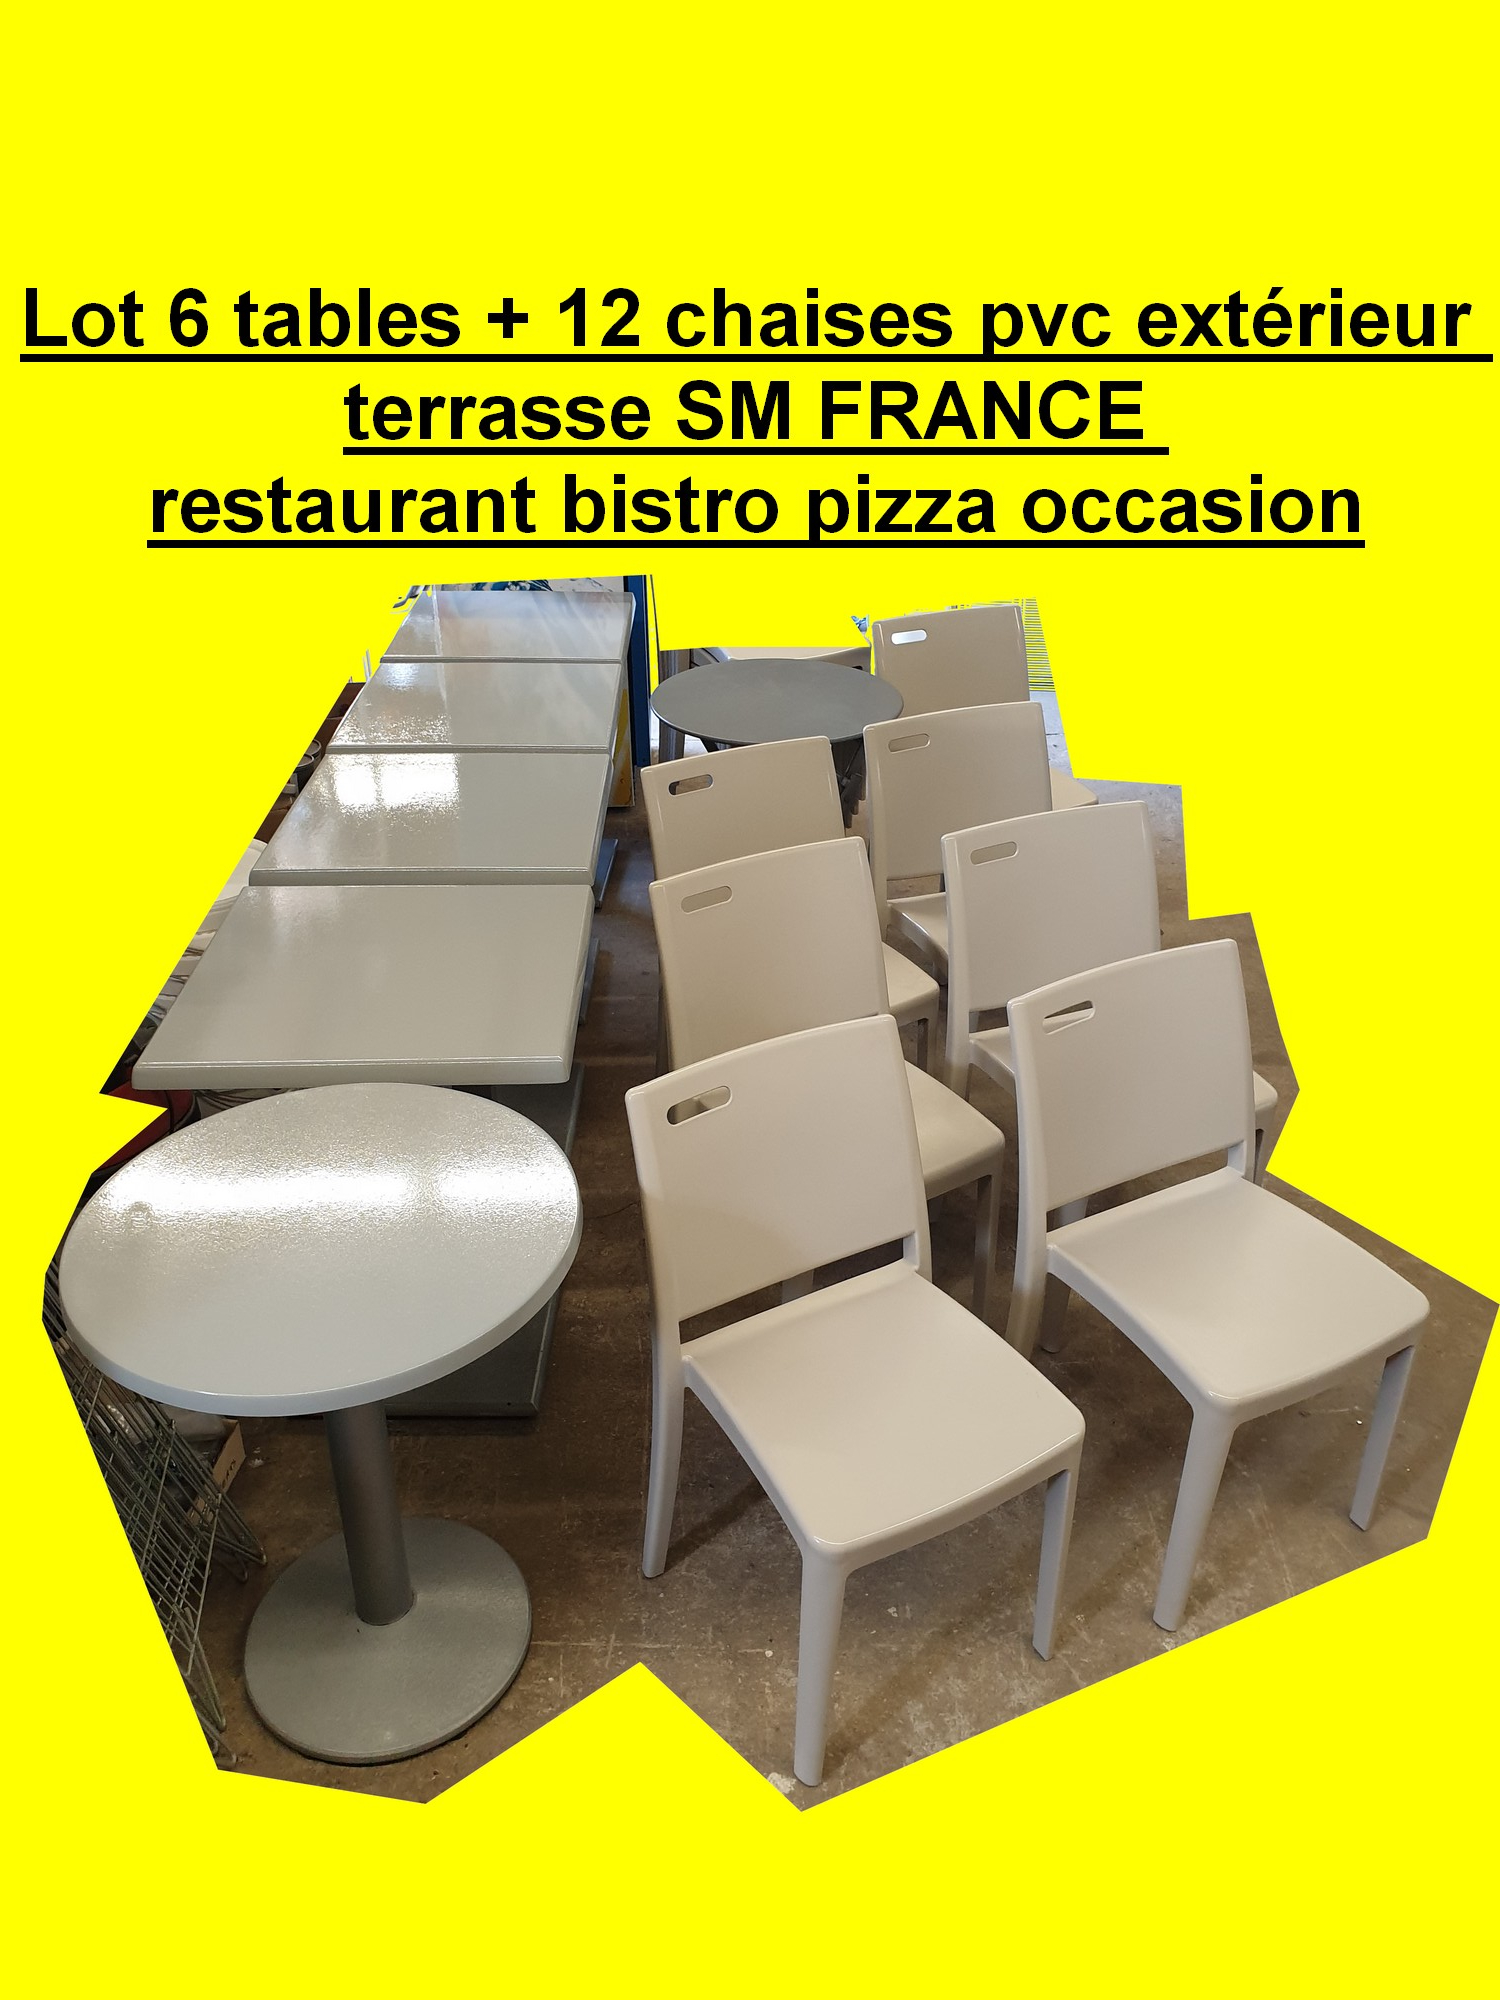 Chaise Exterieur Restaurant Lot 6 Tables 12 Chaises Pvc Extérieur Terrasse Sm France Restaurant Bistro Pizza Occasion